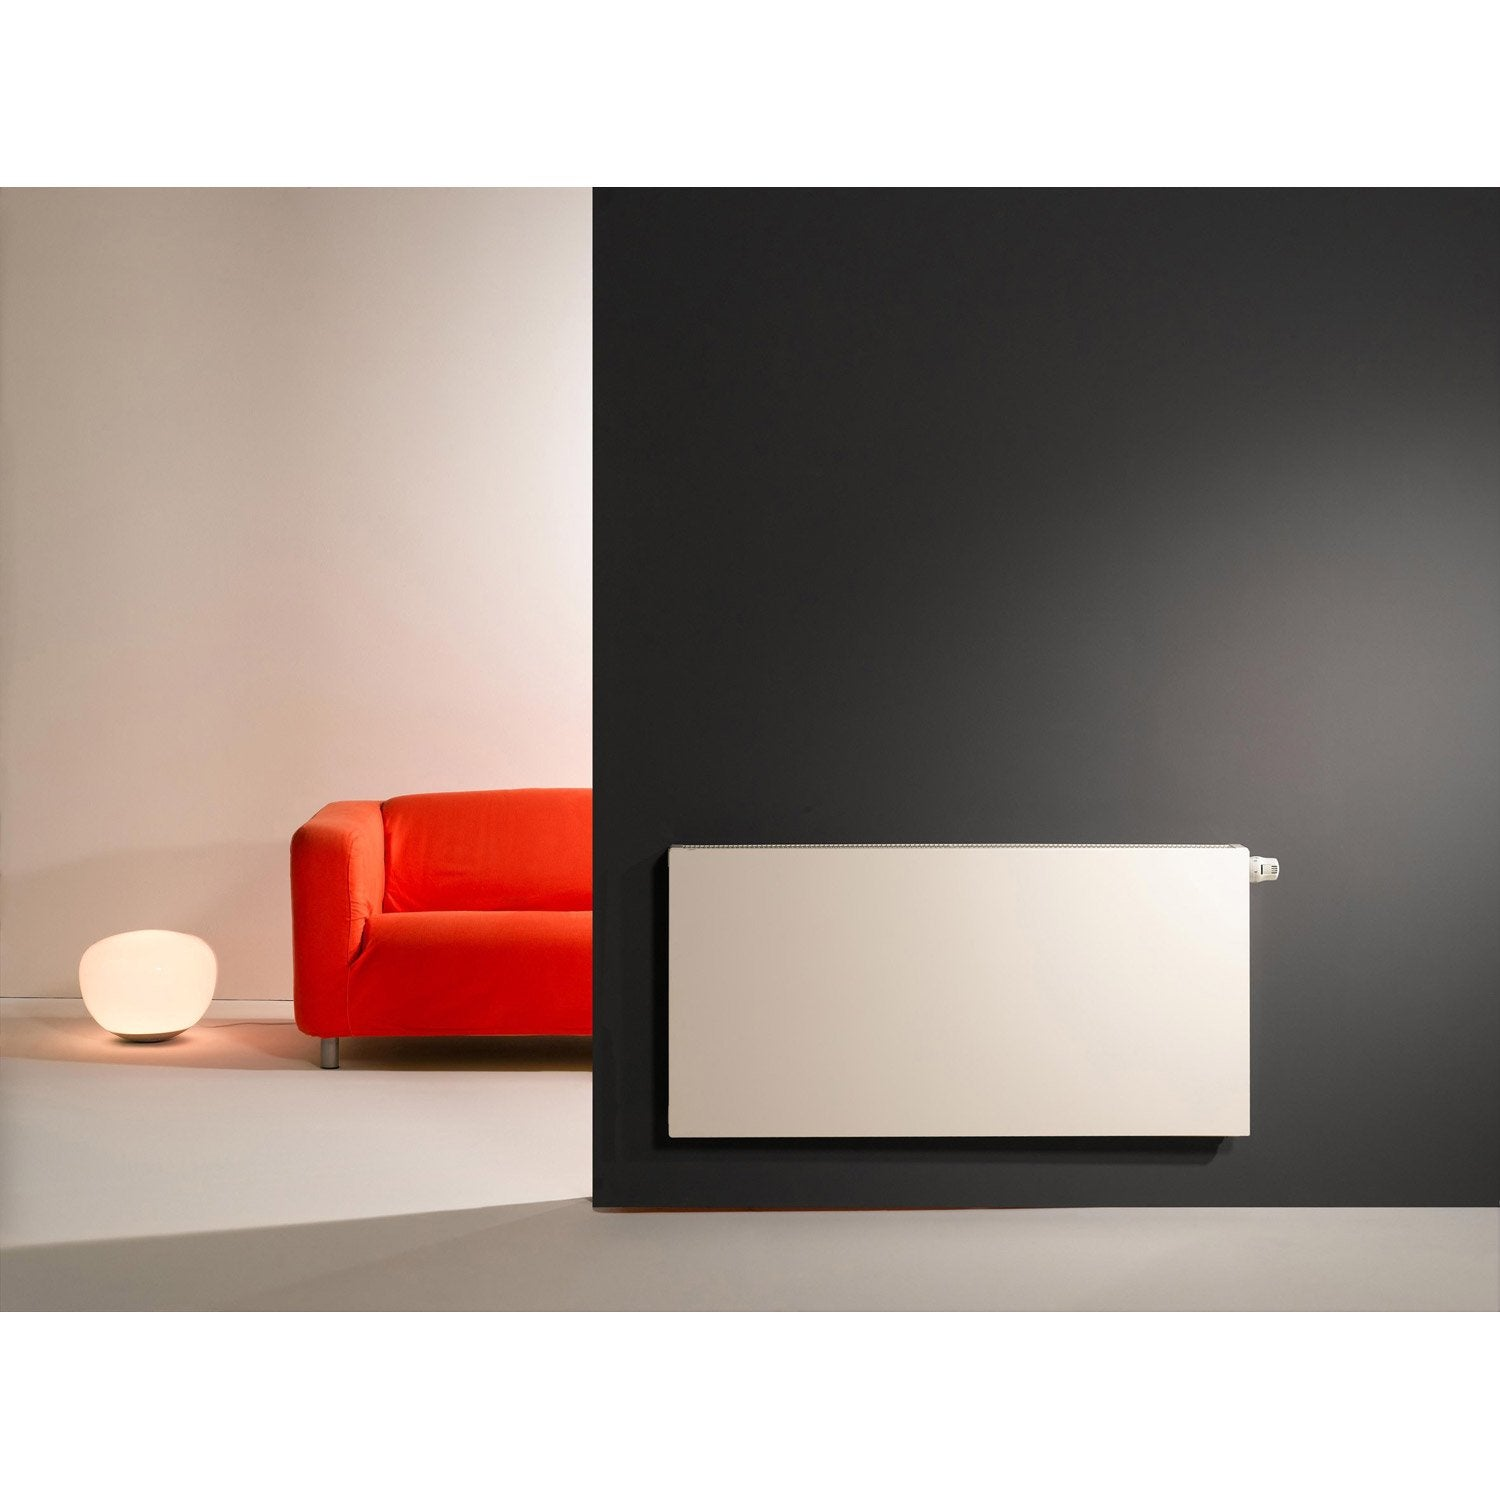 radiateur chauffage central colima blanc cm 1217 w leroy merlin. Black Bedroom Furniture Sets. Home Design Ideas